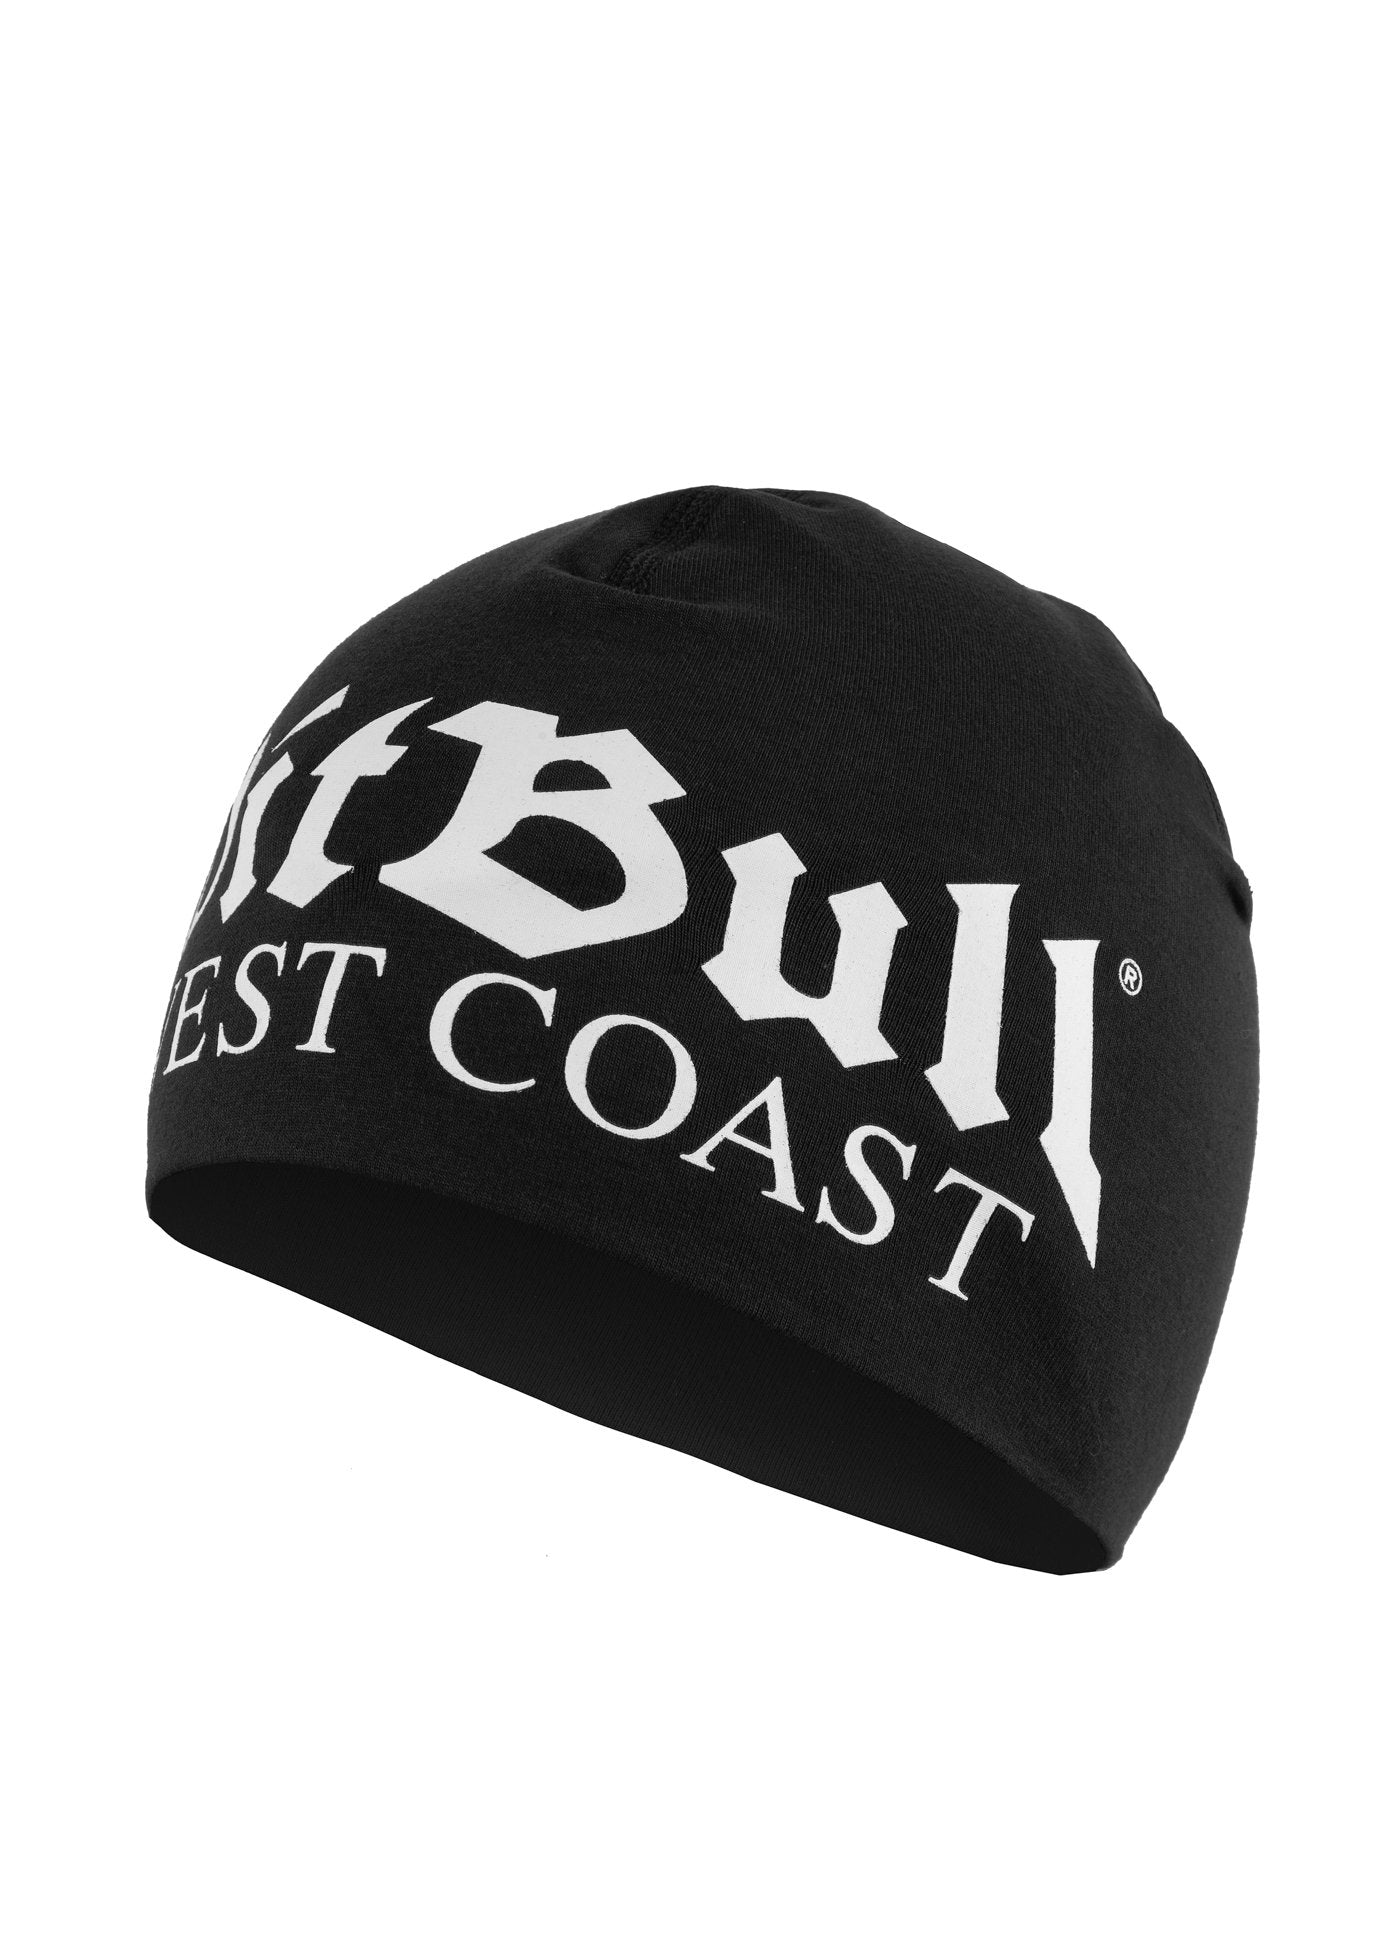 OLD LOGO COMPRESSION BEANIE BLACK - pitbullwestcoast